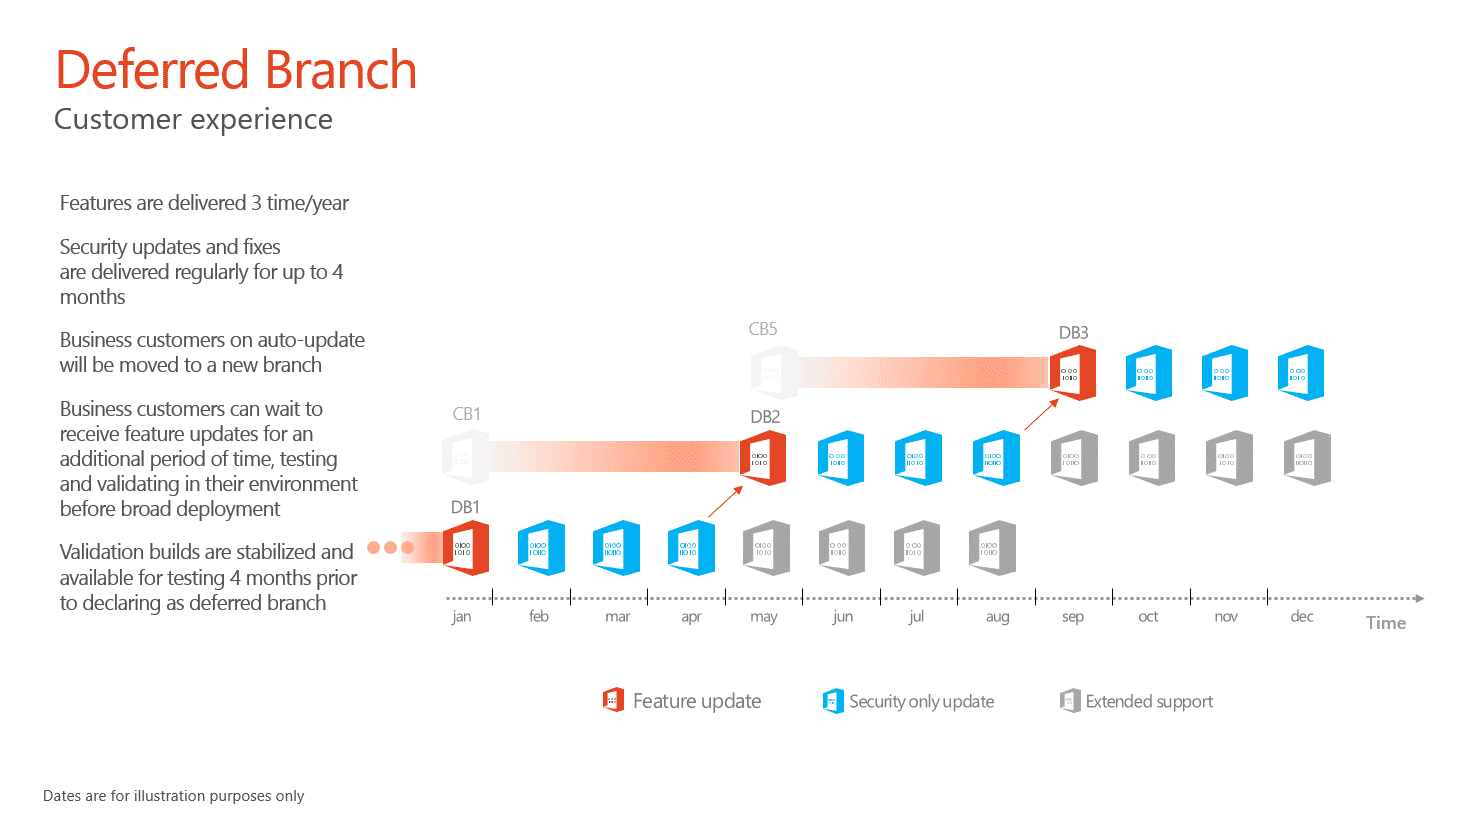 Deferred Branch Mechanismus für Zukünftige Microsoft Office 365 ProPlus Update - Quelle: Screenshot Microsoft Ignite Konferenz Unterlagen